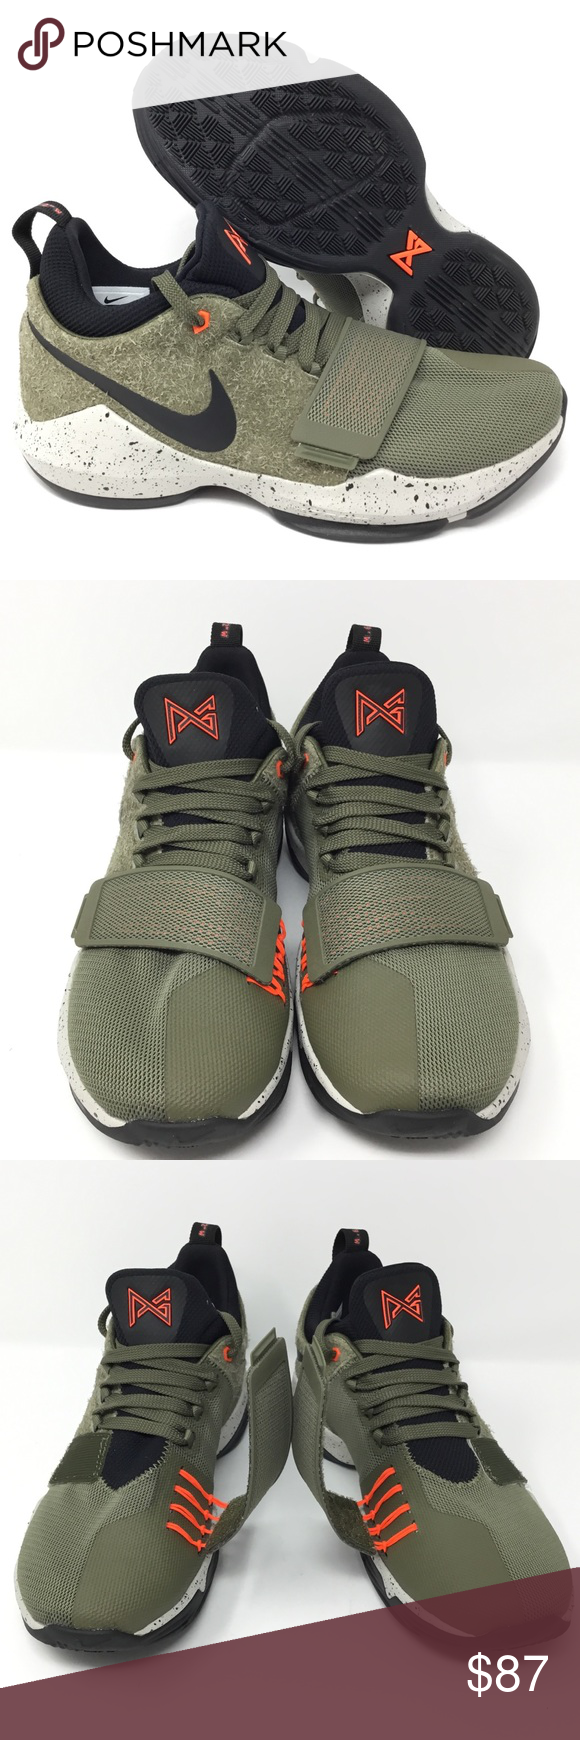 ad90759ecd04 Nike PG1 Elements Paul George Basketball Shoes Nike PG1 Elements Paul George  Basket Ball Shoes Size 7 Olive Green Black New Without Box 911085-200 Nike  ...